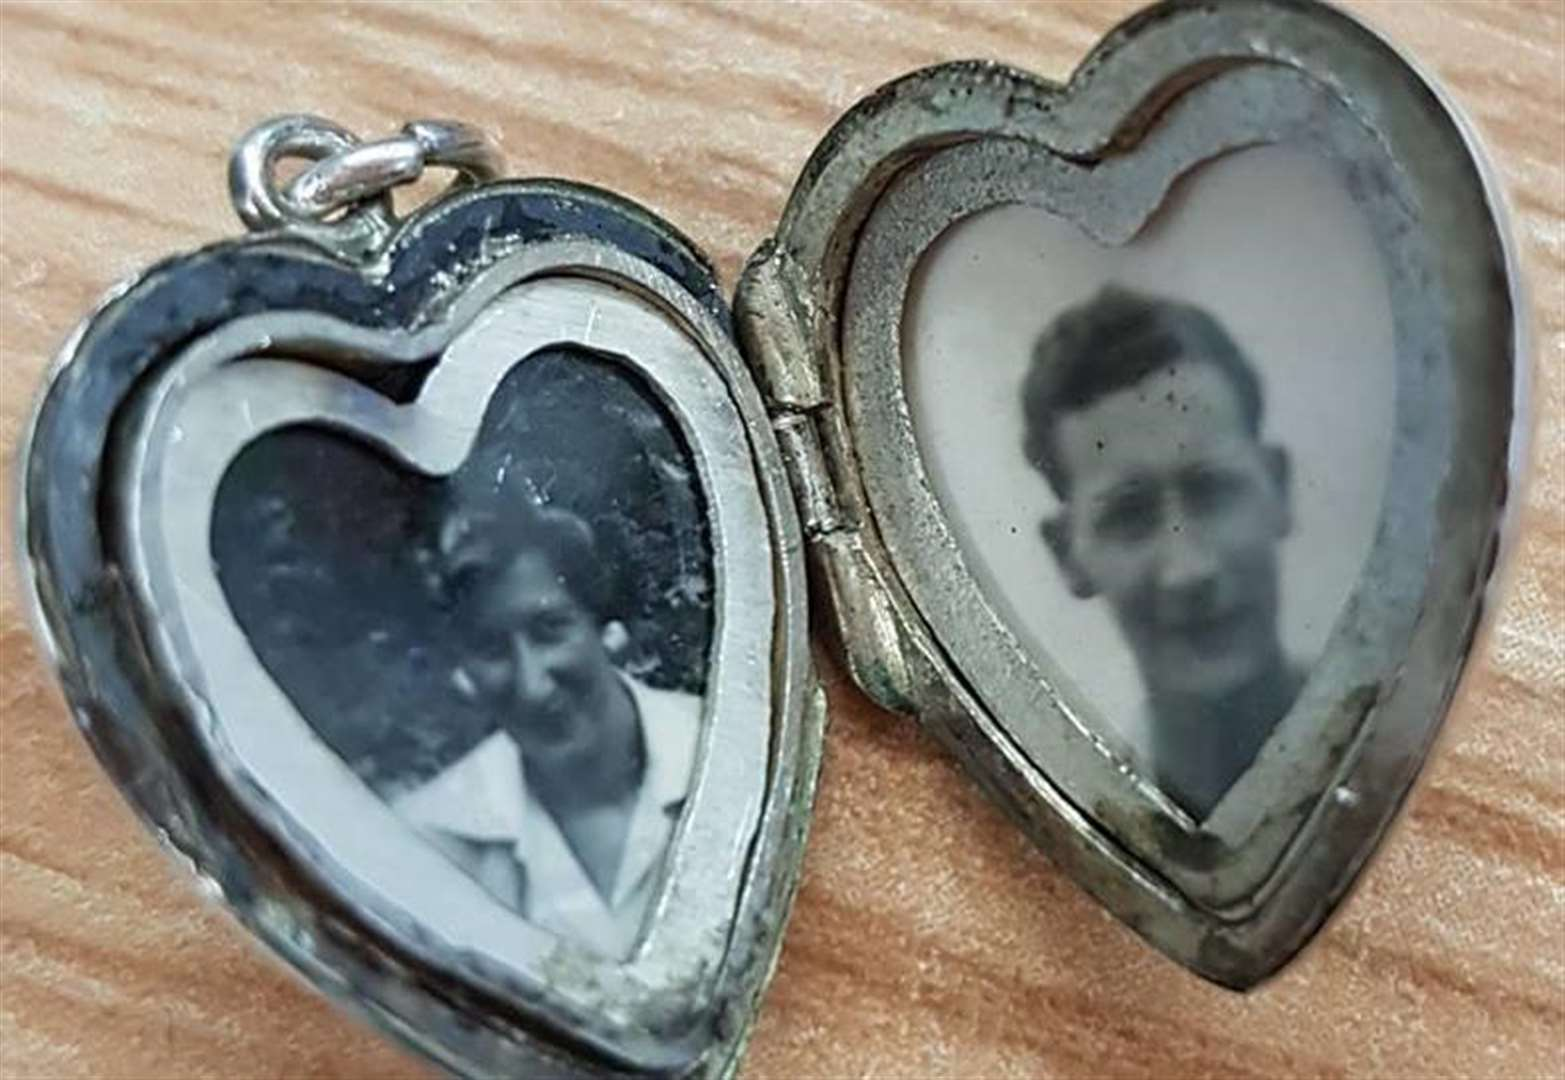 Police appeal for help finding owner of locket